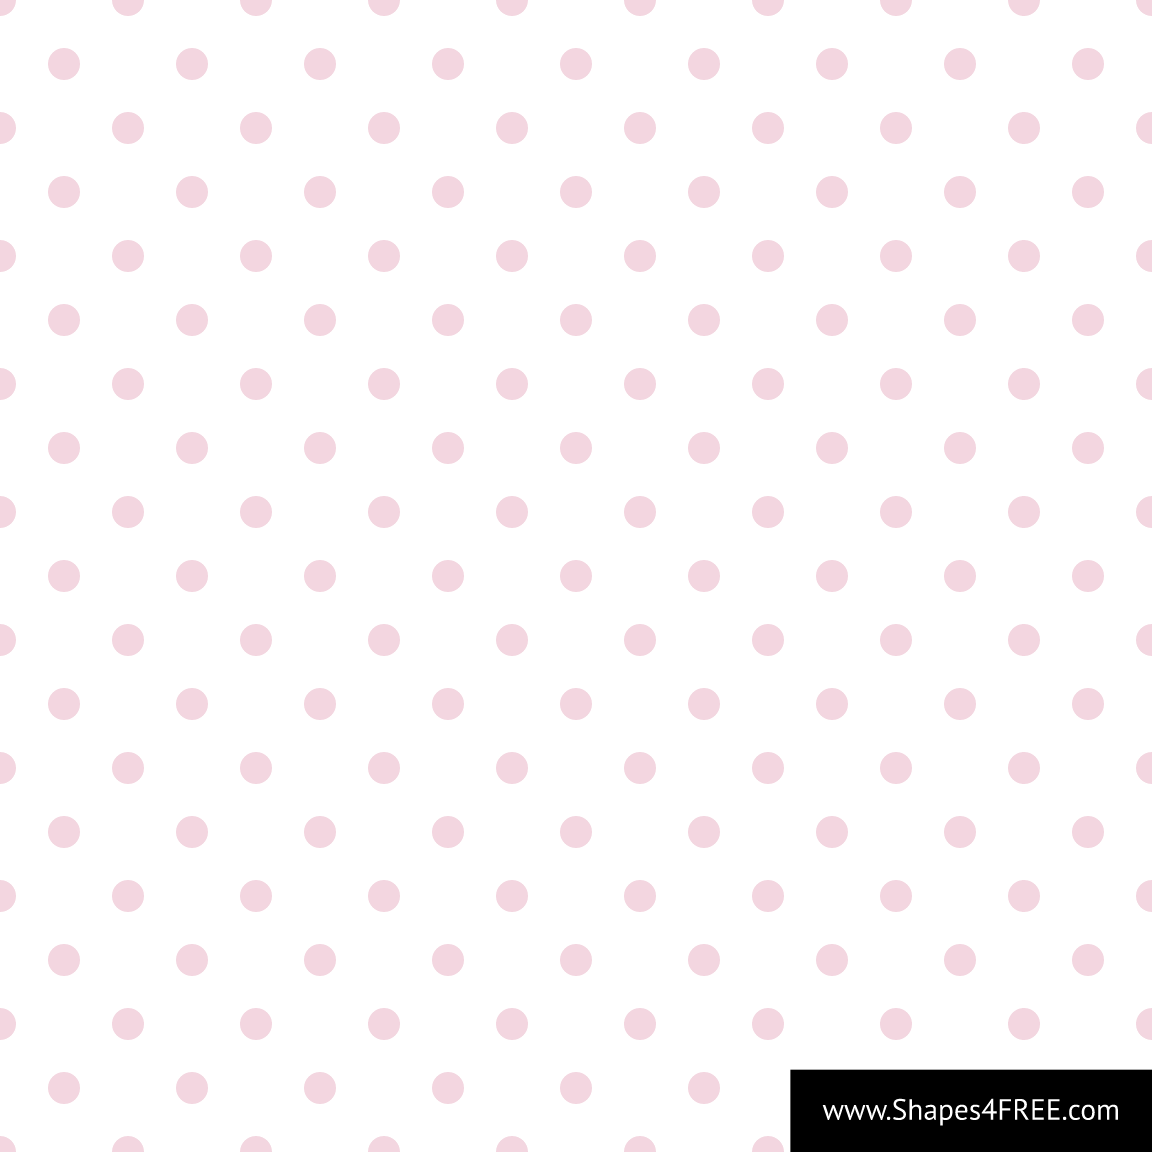 Seamless Baby Pink Polka Dot Vector Background